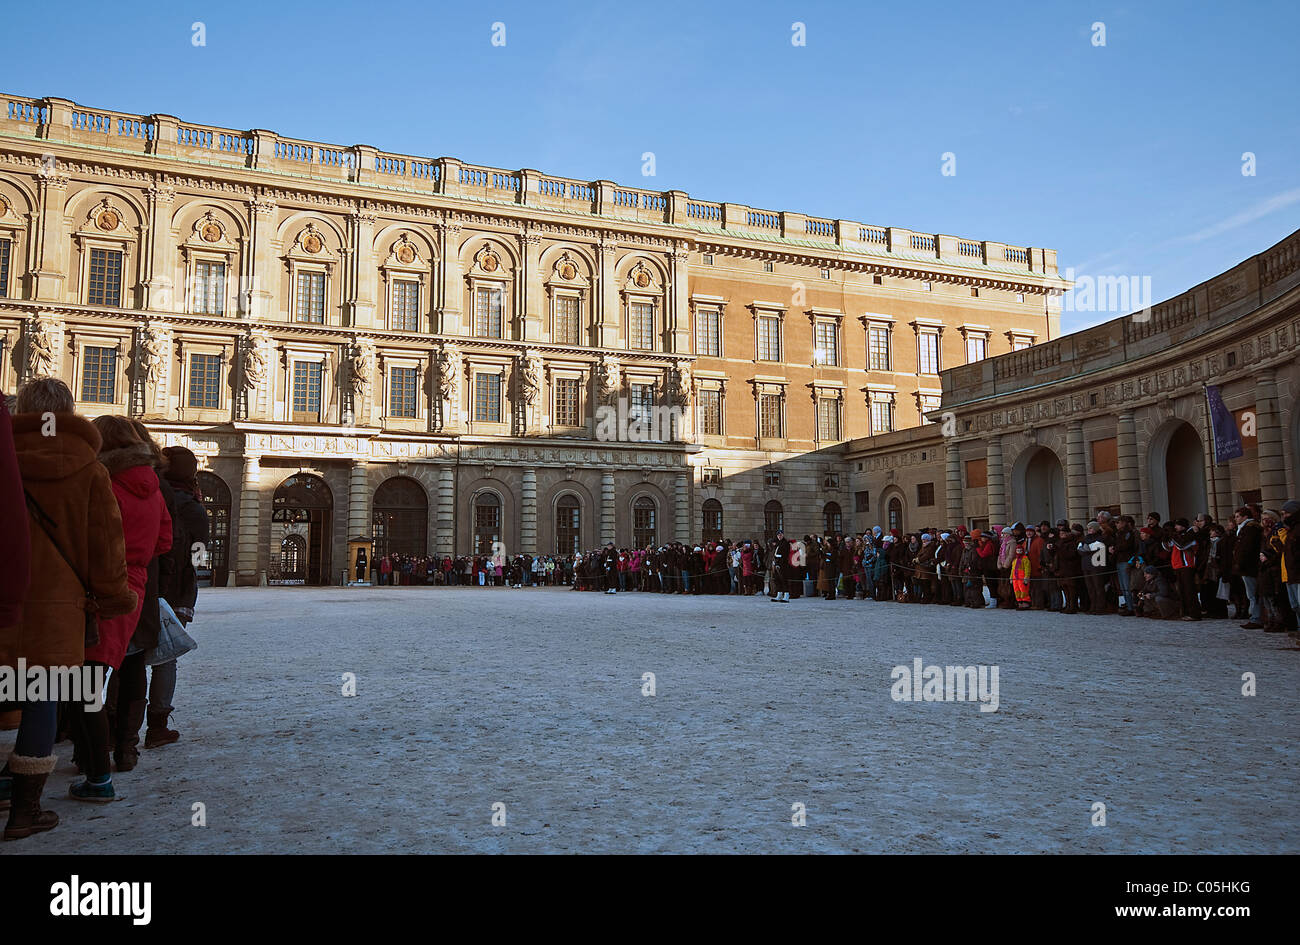 Royal Palace Facade In Stockholm, Sweden Stock Image - Image of famous,  exterior: 132079553